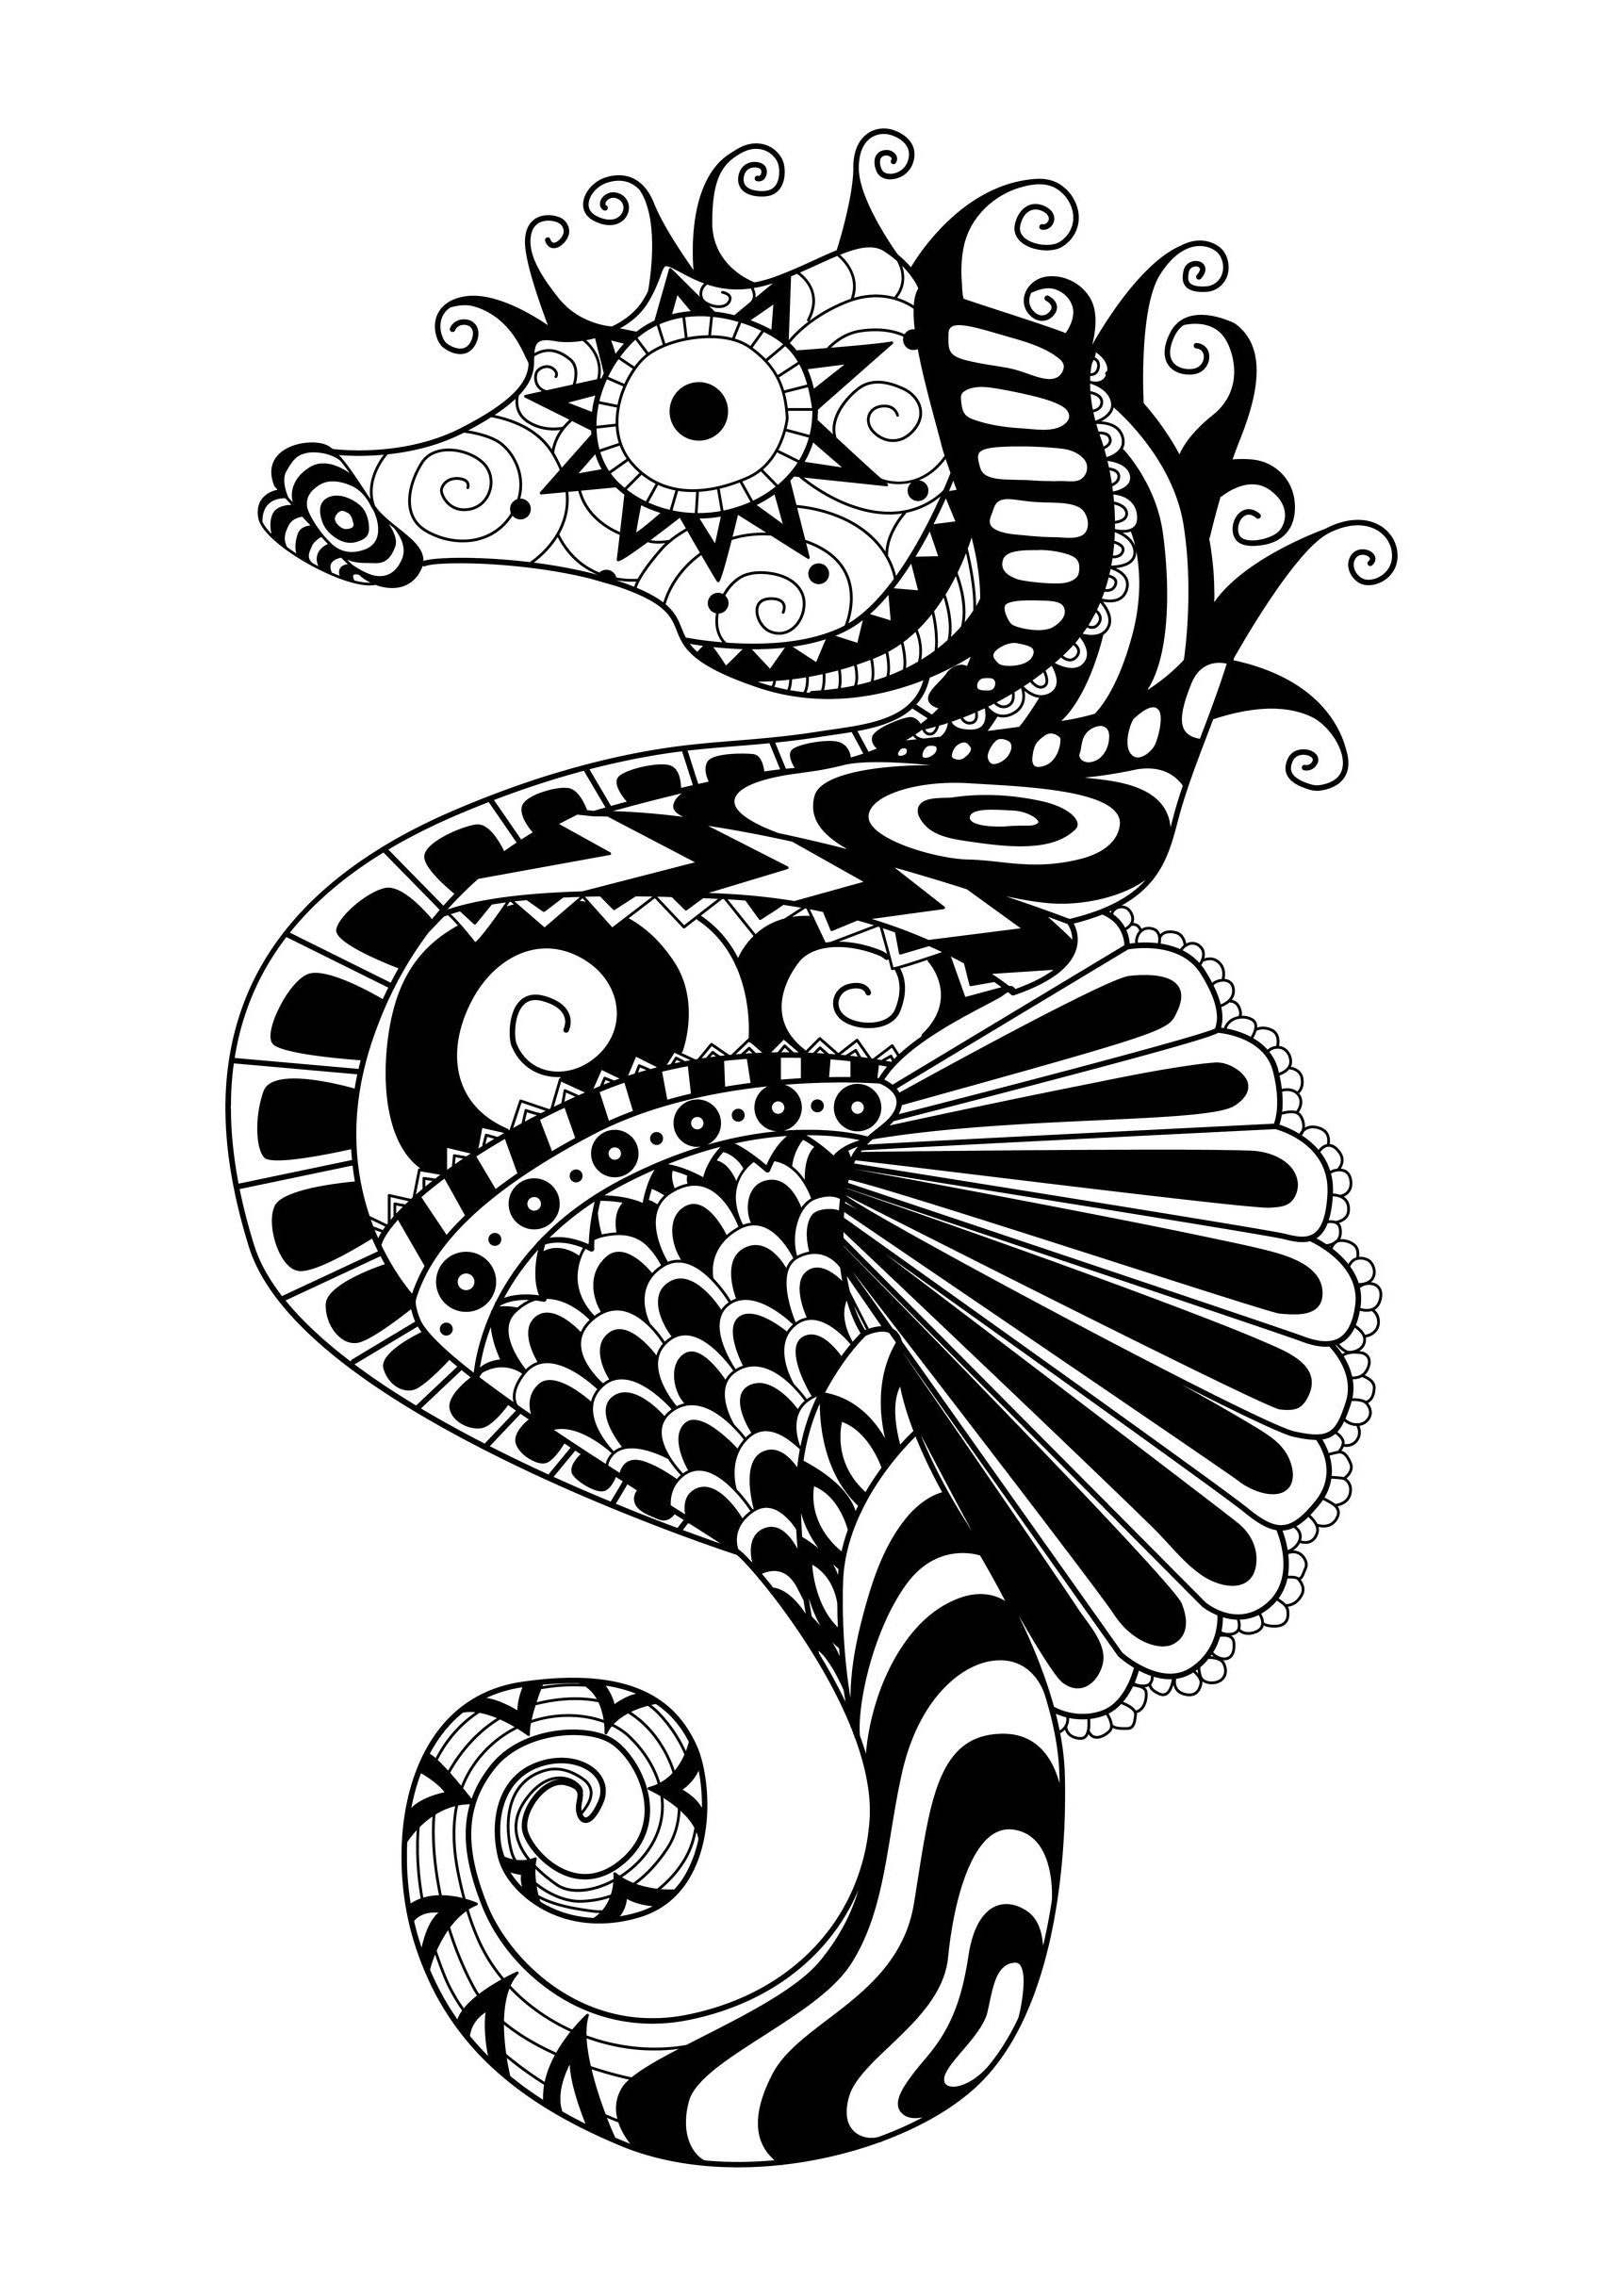 zentangle coloring pages free printable zentangle to print zentangle kids coloring pages free printable zentangle coloring pages